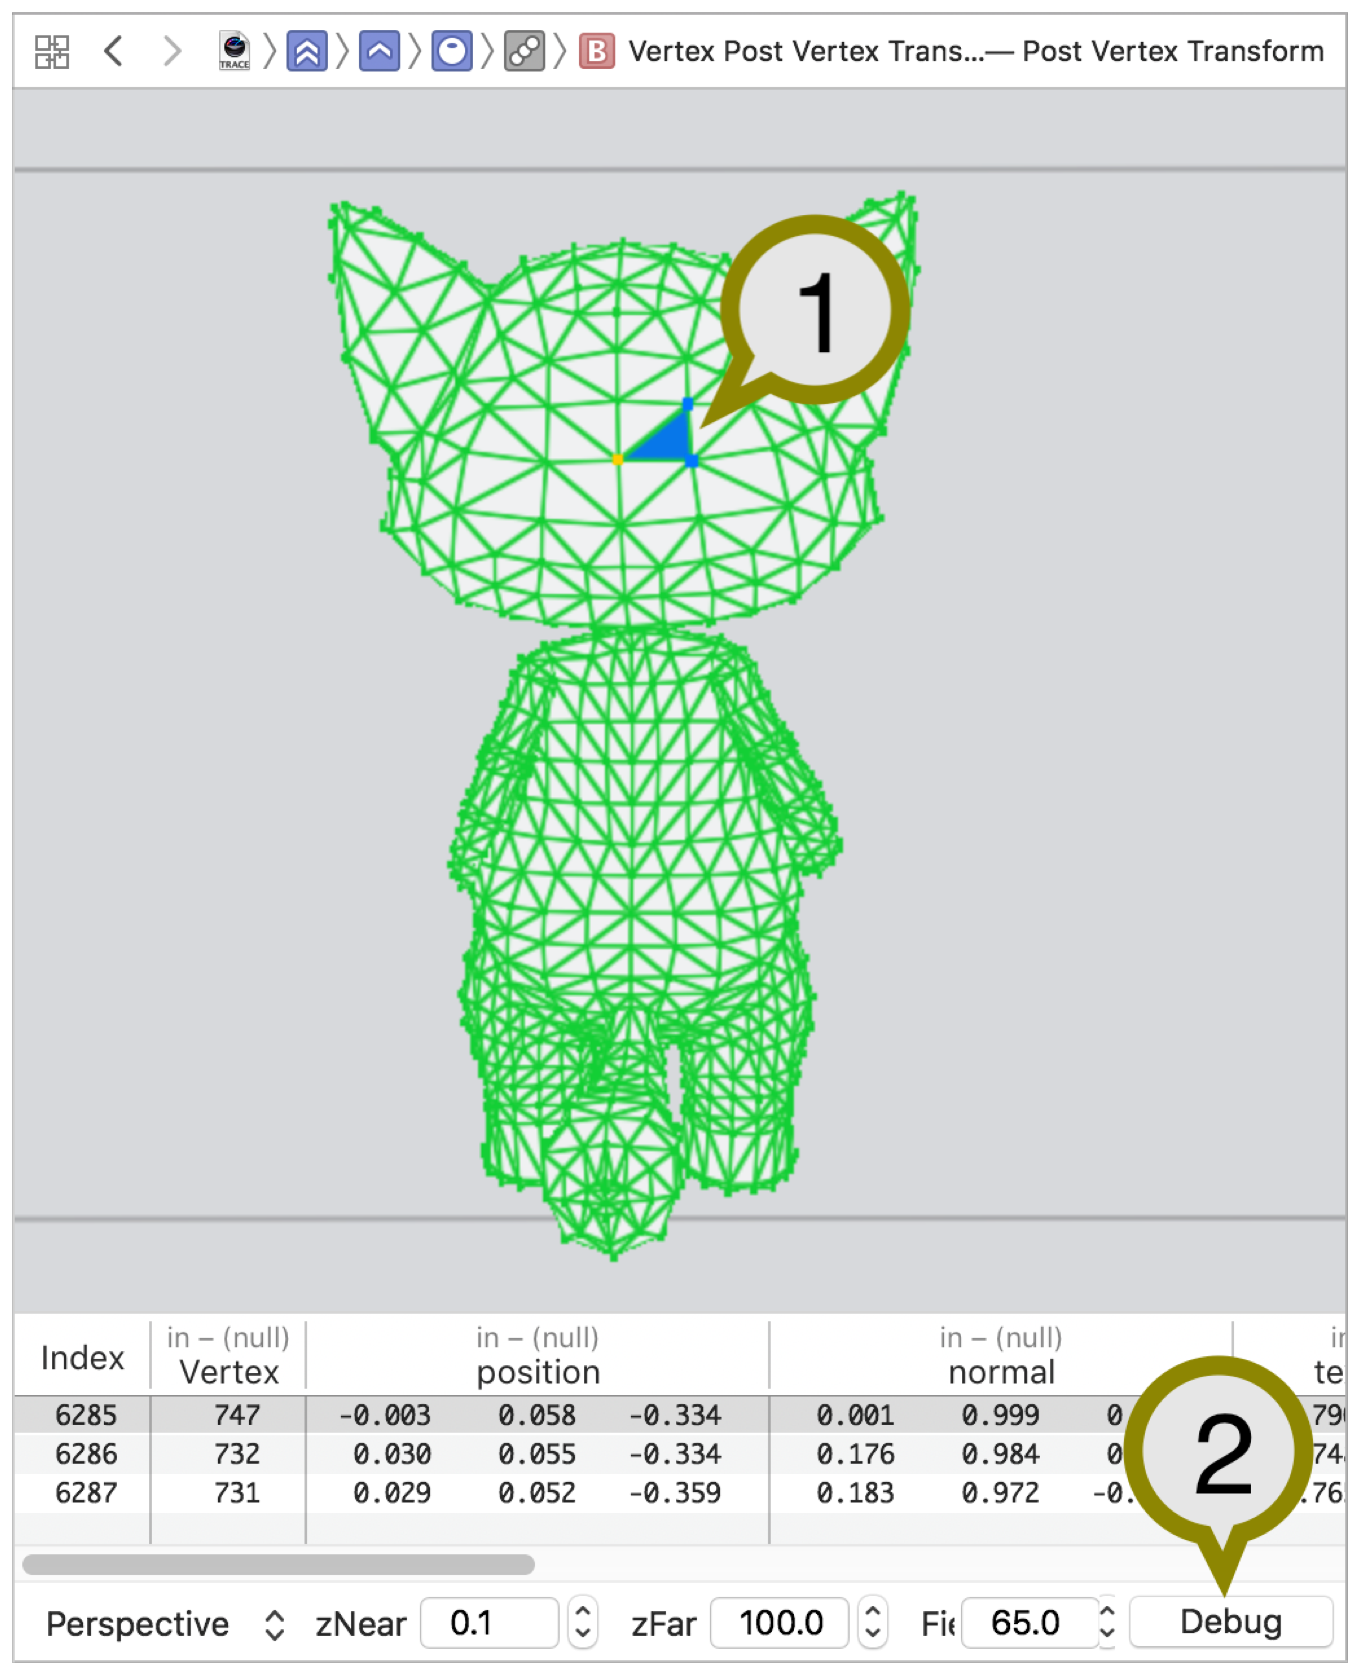 In the center pane, the geometry viewer displays the vertices included in the draw call with a selected primitive annotated. On the bottom-right, the Debug button is annotated.